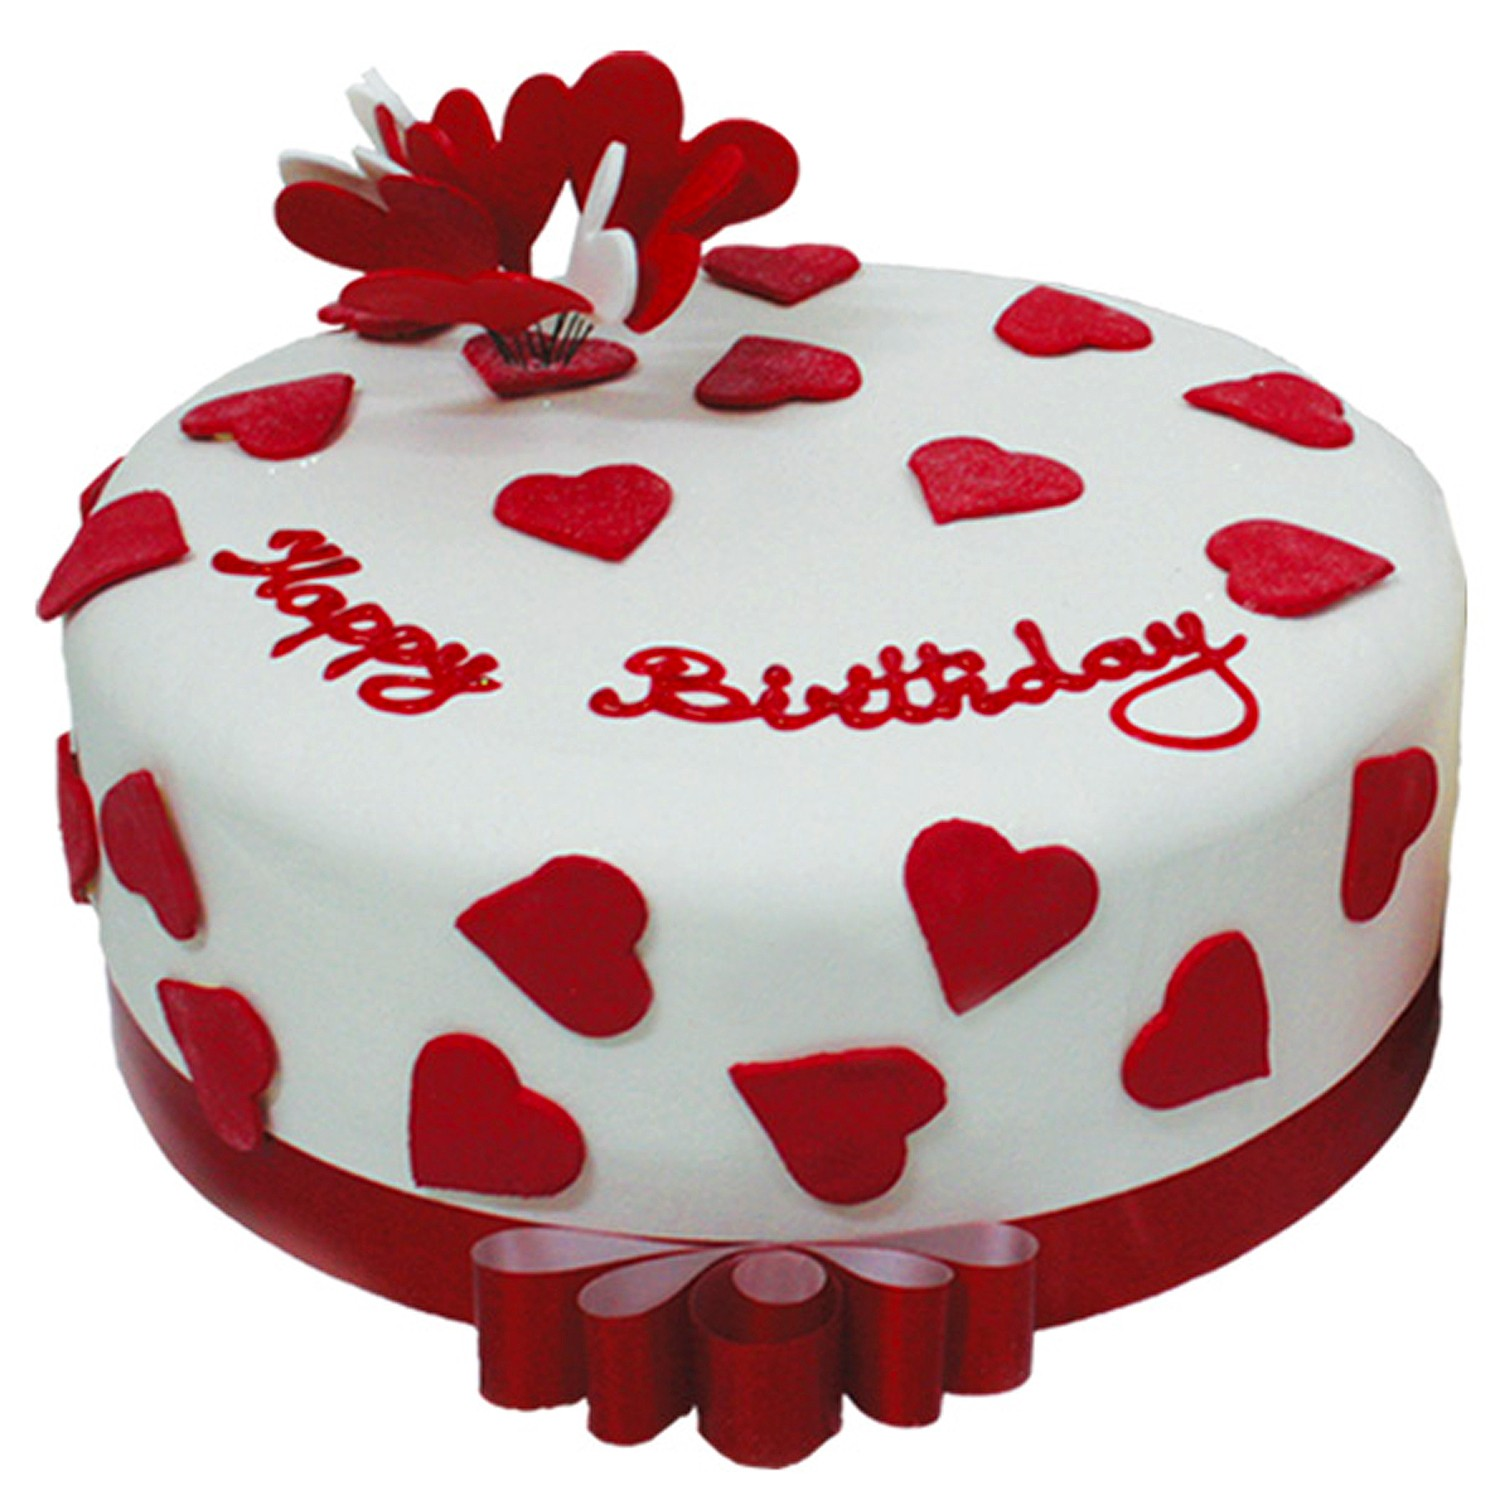 Happy Birthday Heart Cake Cute Birthdays original?v=mpbl-1&am